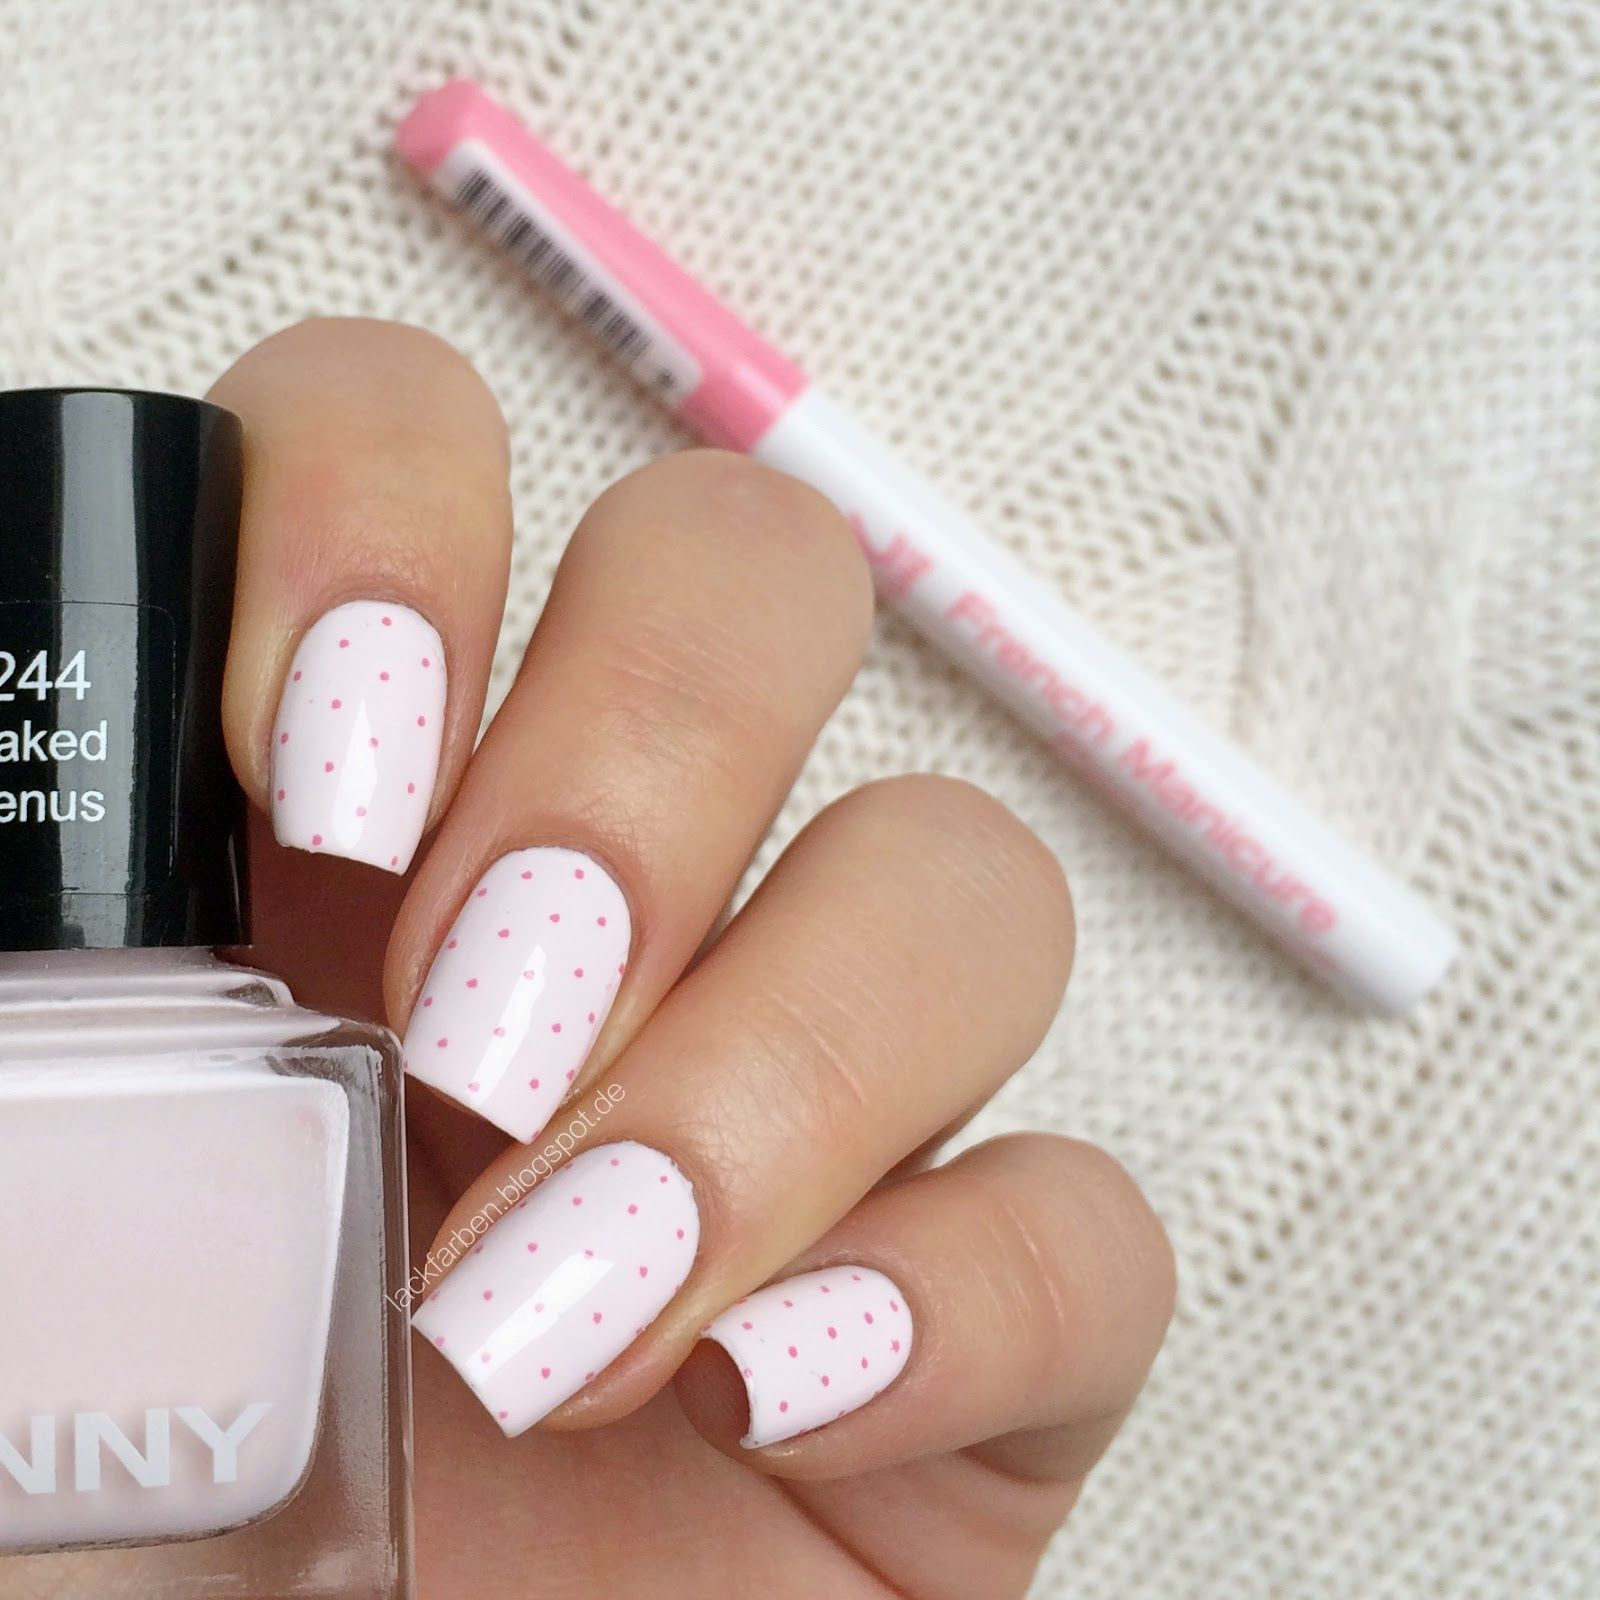 Anny - Naked Venus RdL Young French Manicure Pen @Lackfarben | Nails ...